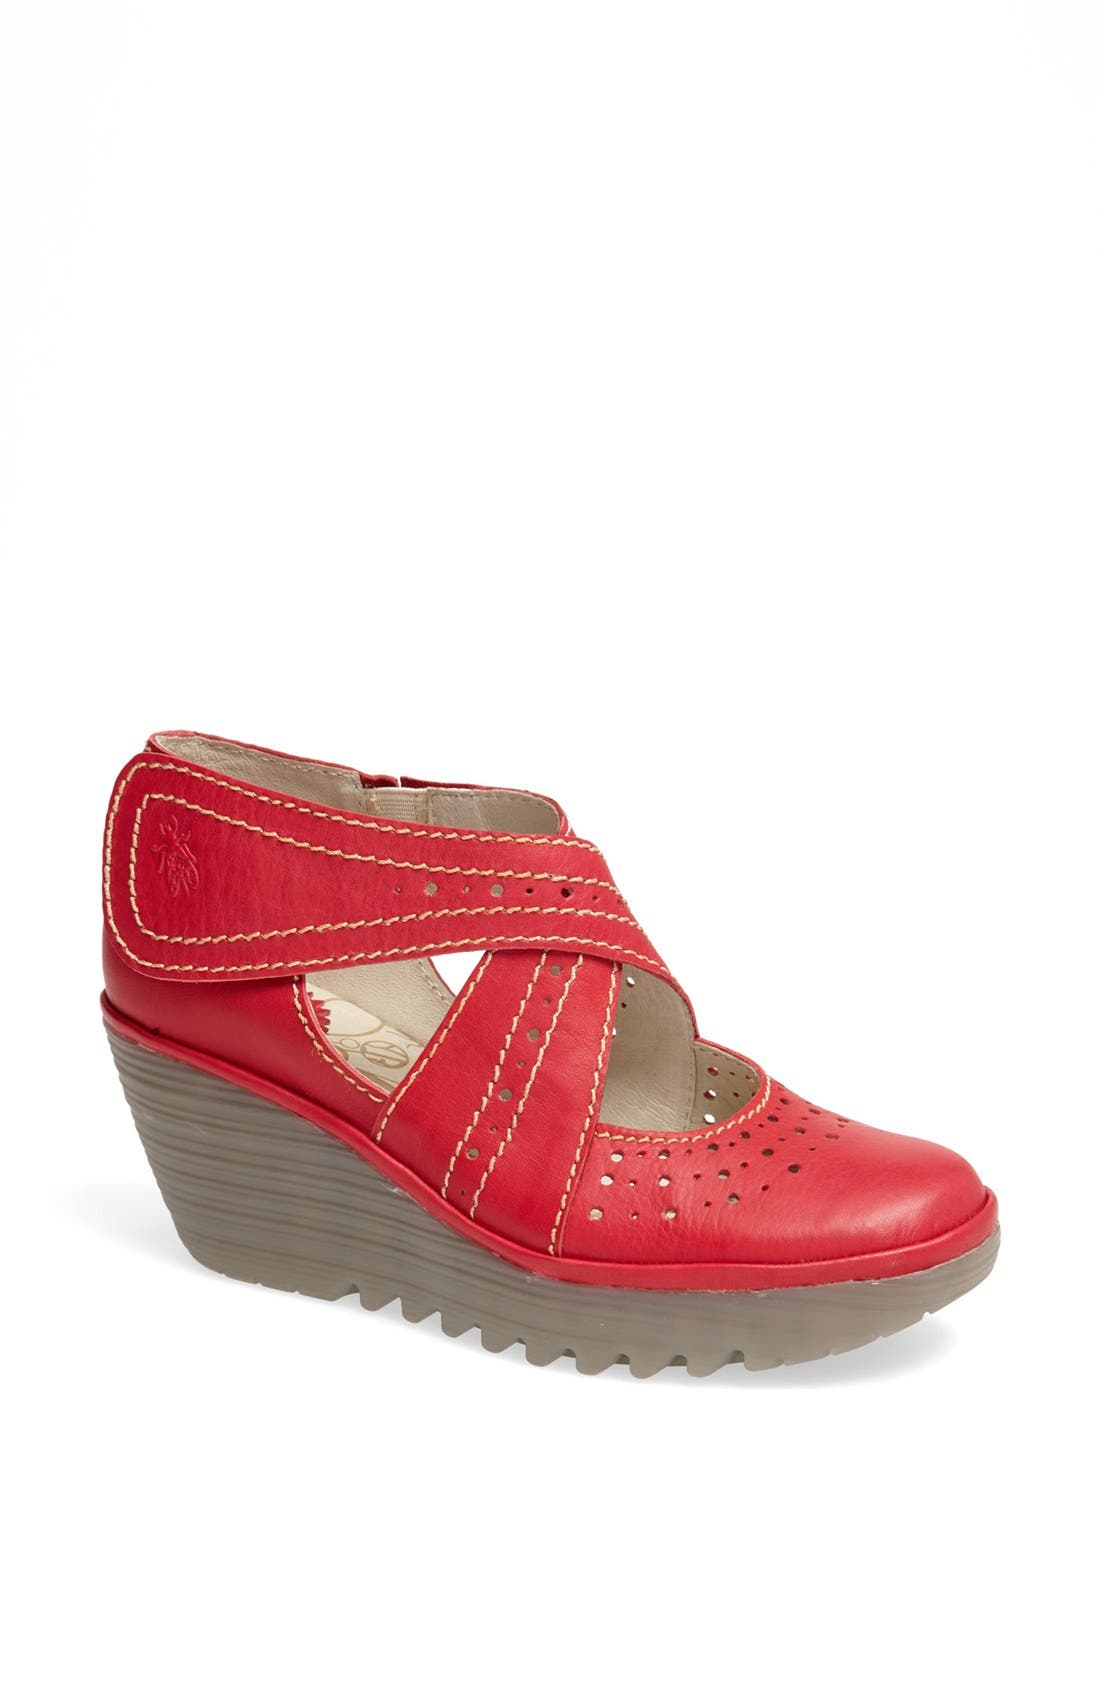 Alternate Image 1 Selected - Fly London 'Yepe' Leather Pump